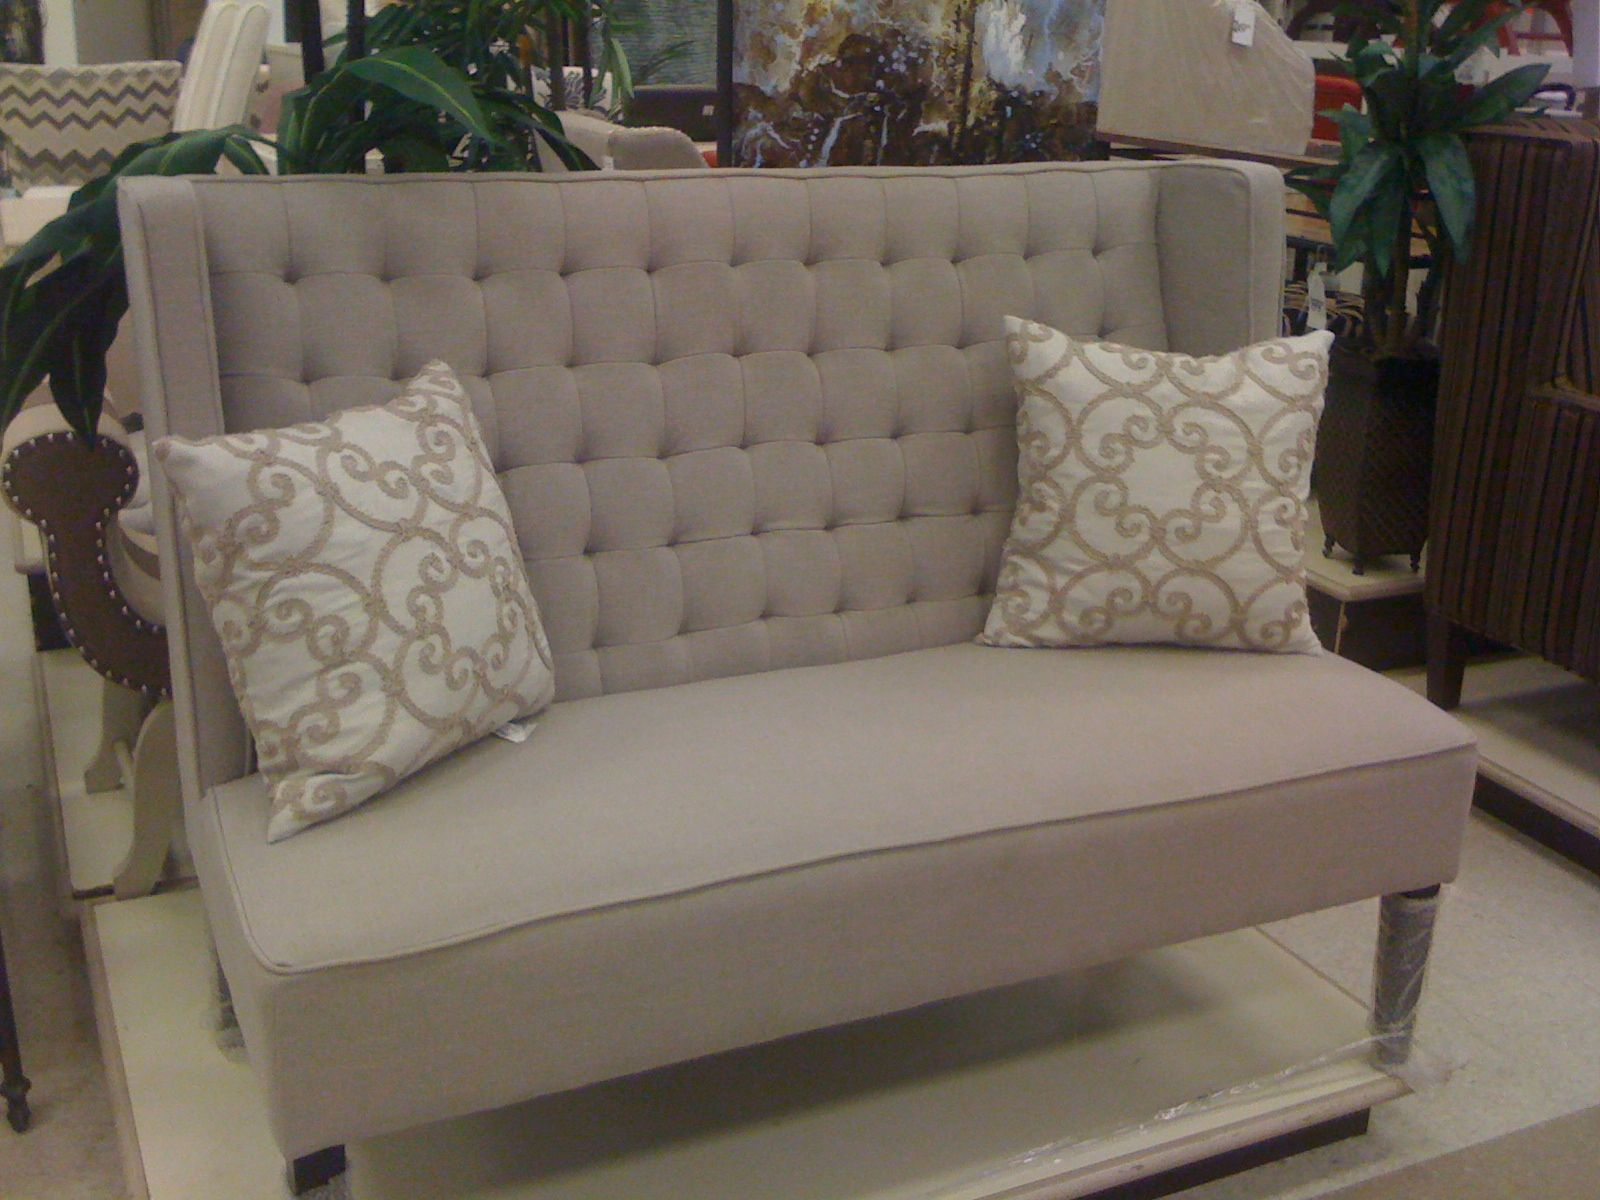 Grey Loveseat from Homesense House Projects